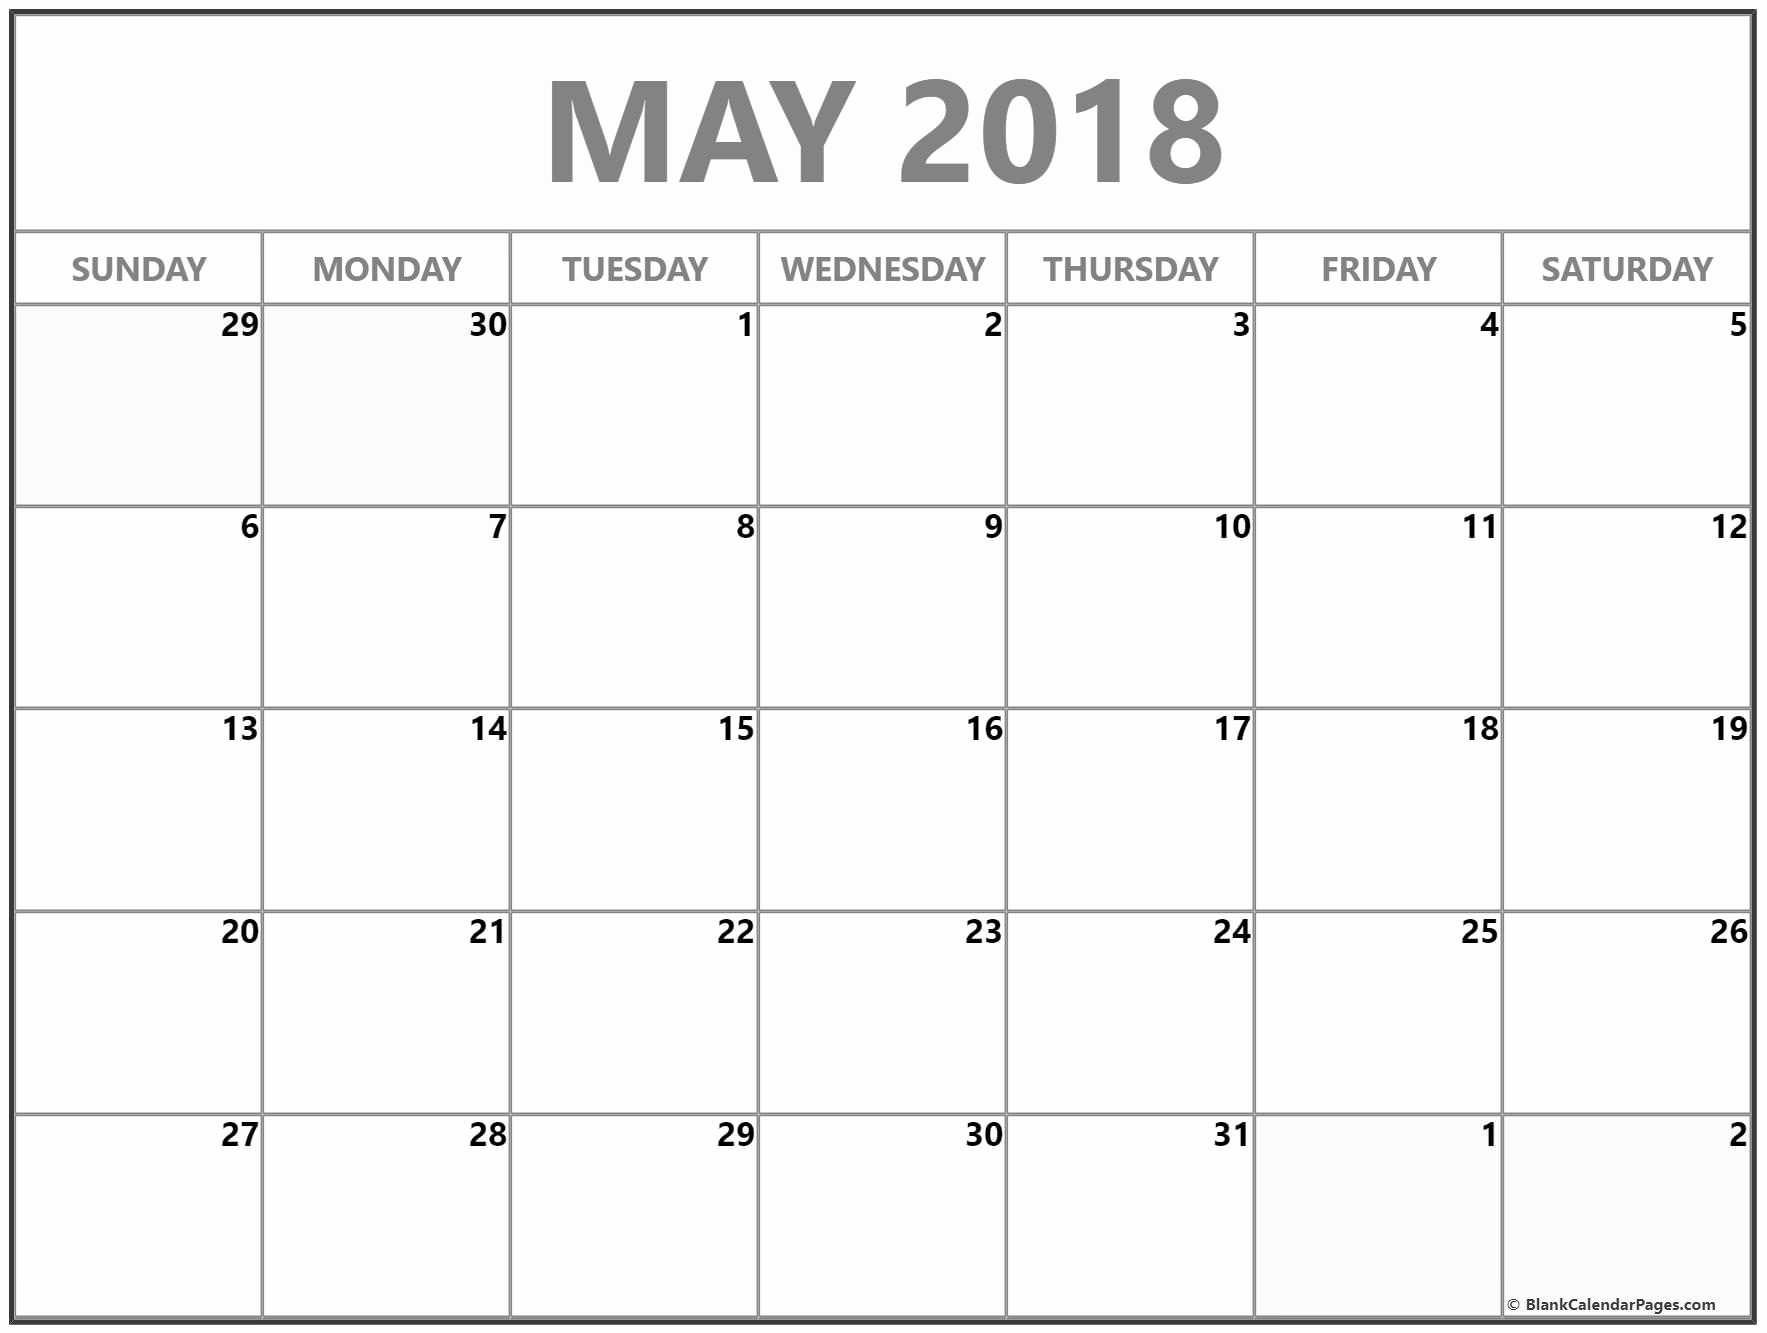 Blank May 2018 Calendar Printable Luxury May 2018 Free Printable Blank Calendar Collection